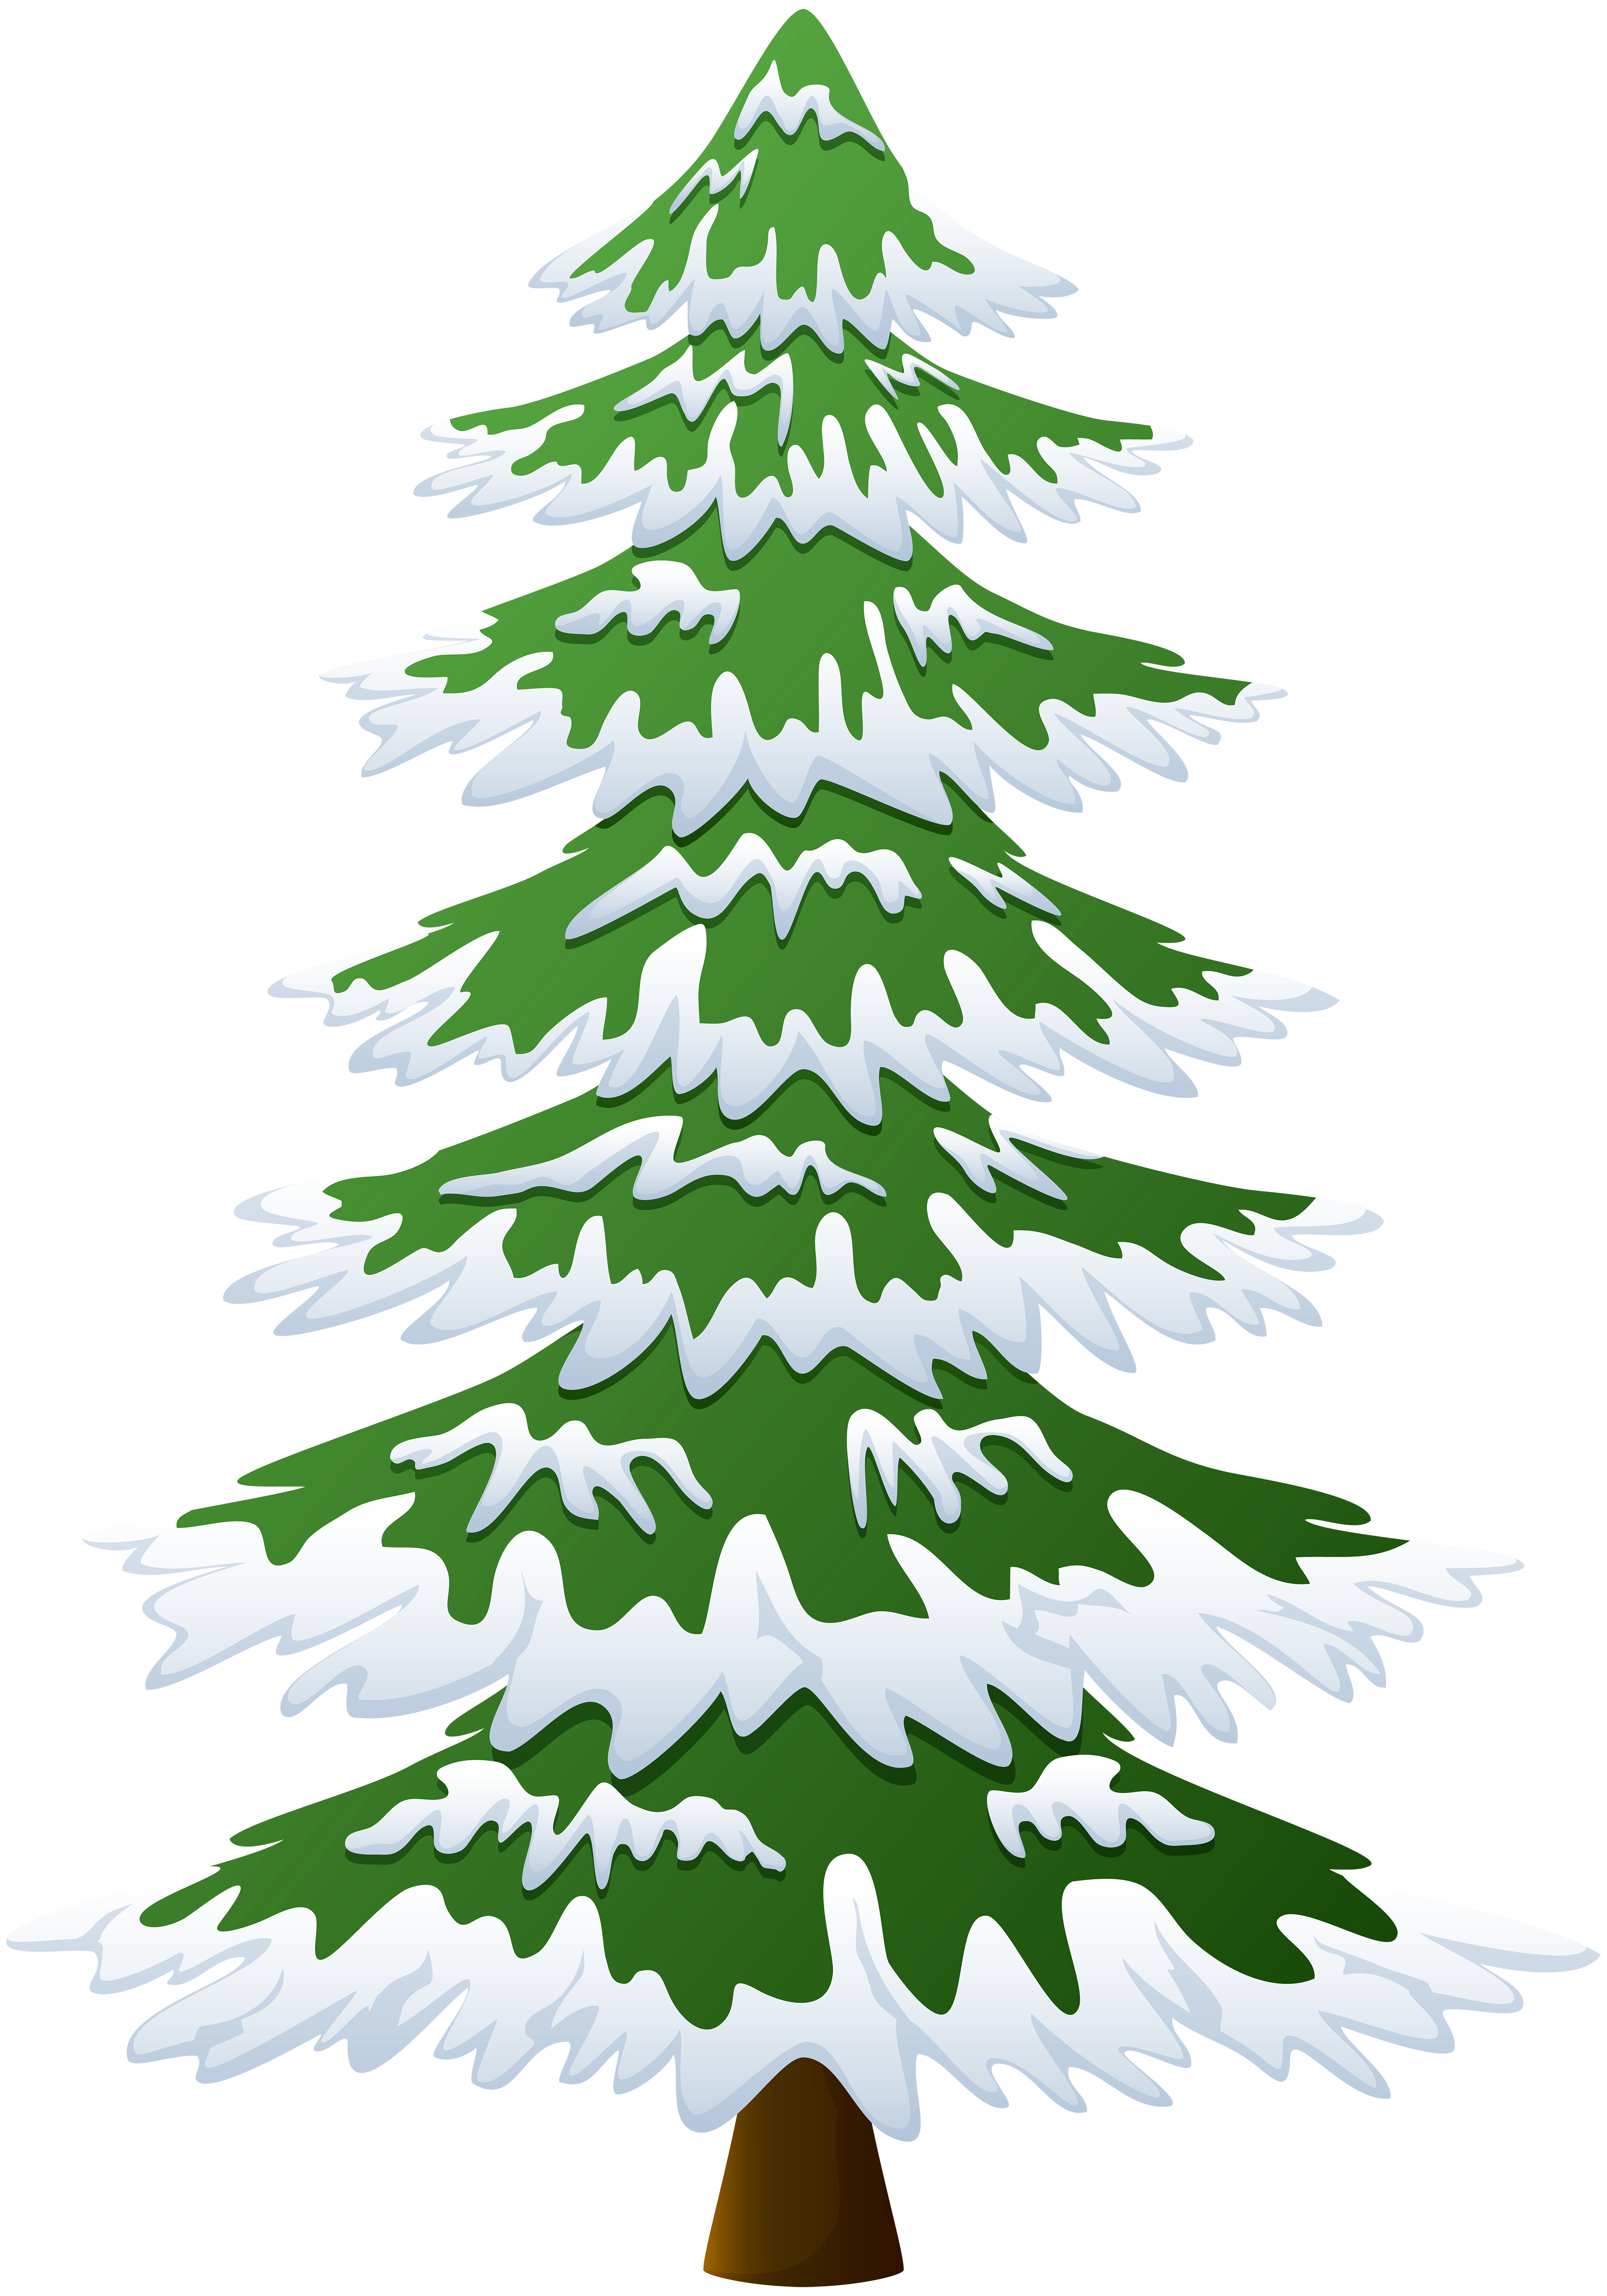 Snowy pine tree clipart image library stock Snowy Pine Tree Transparent PNG Image | Gallery Yopriceville - High ... image library stock